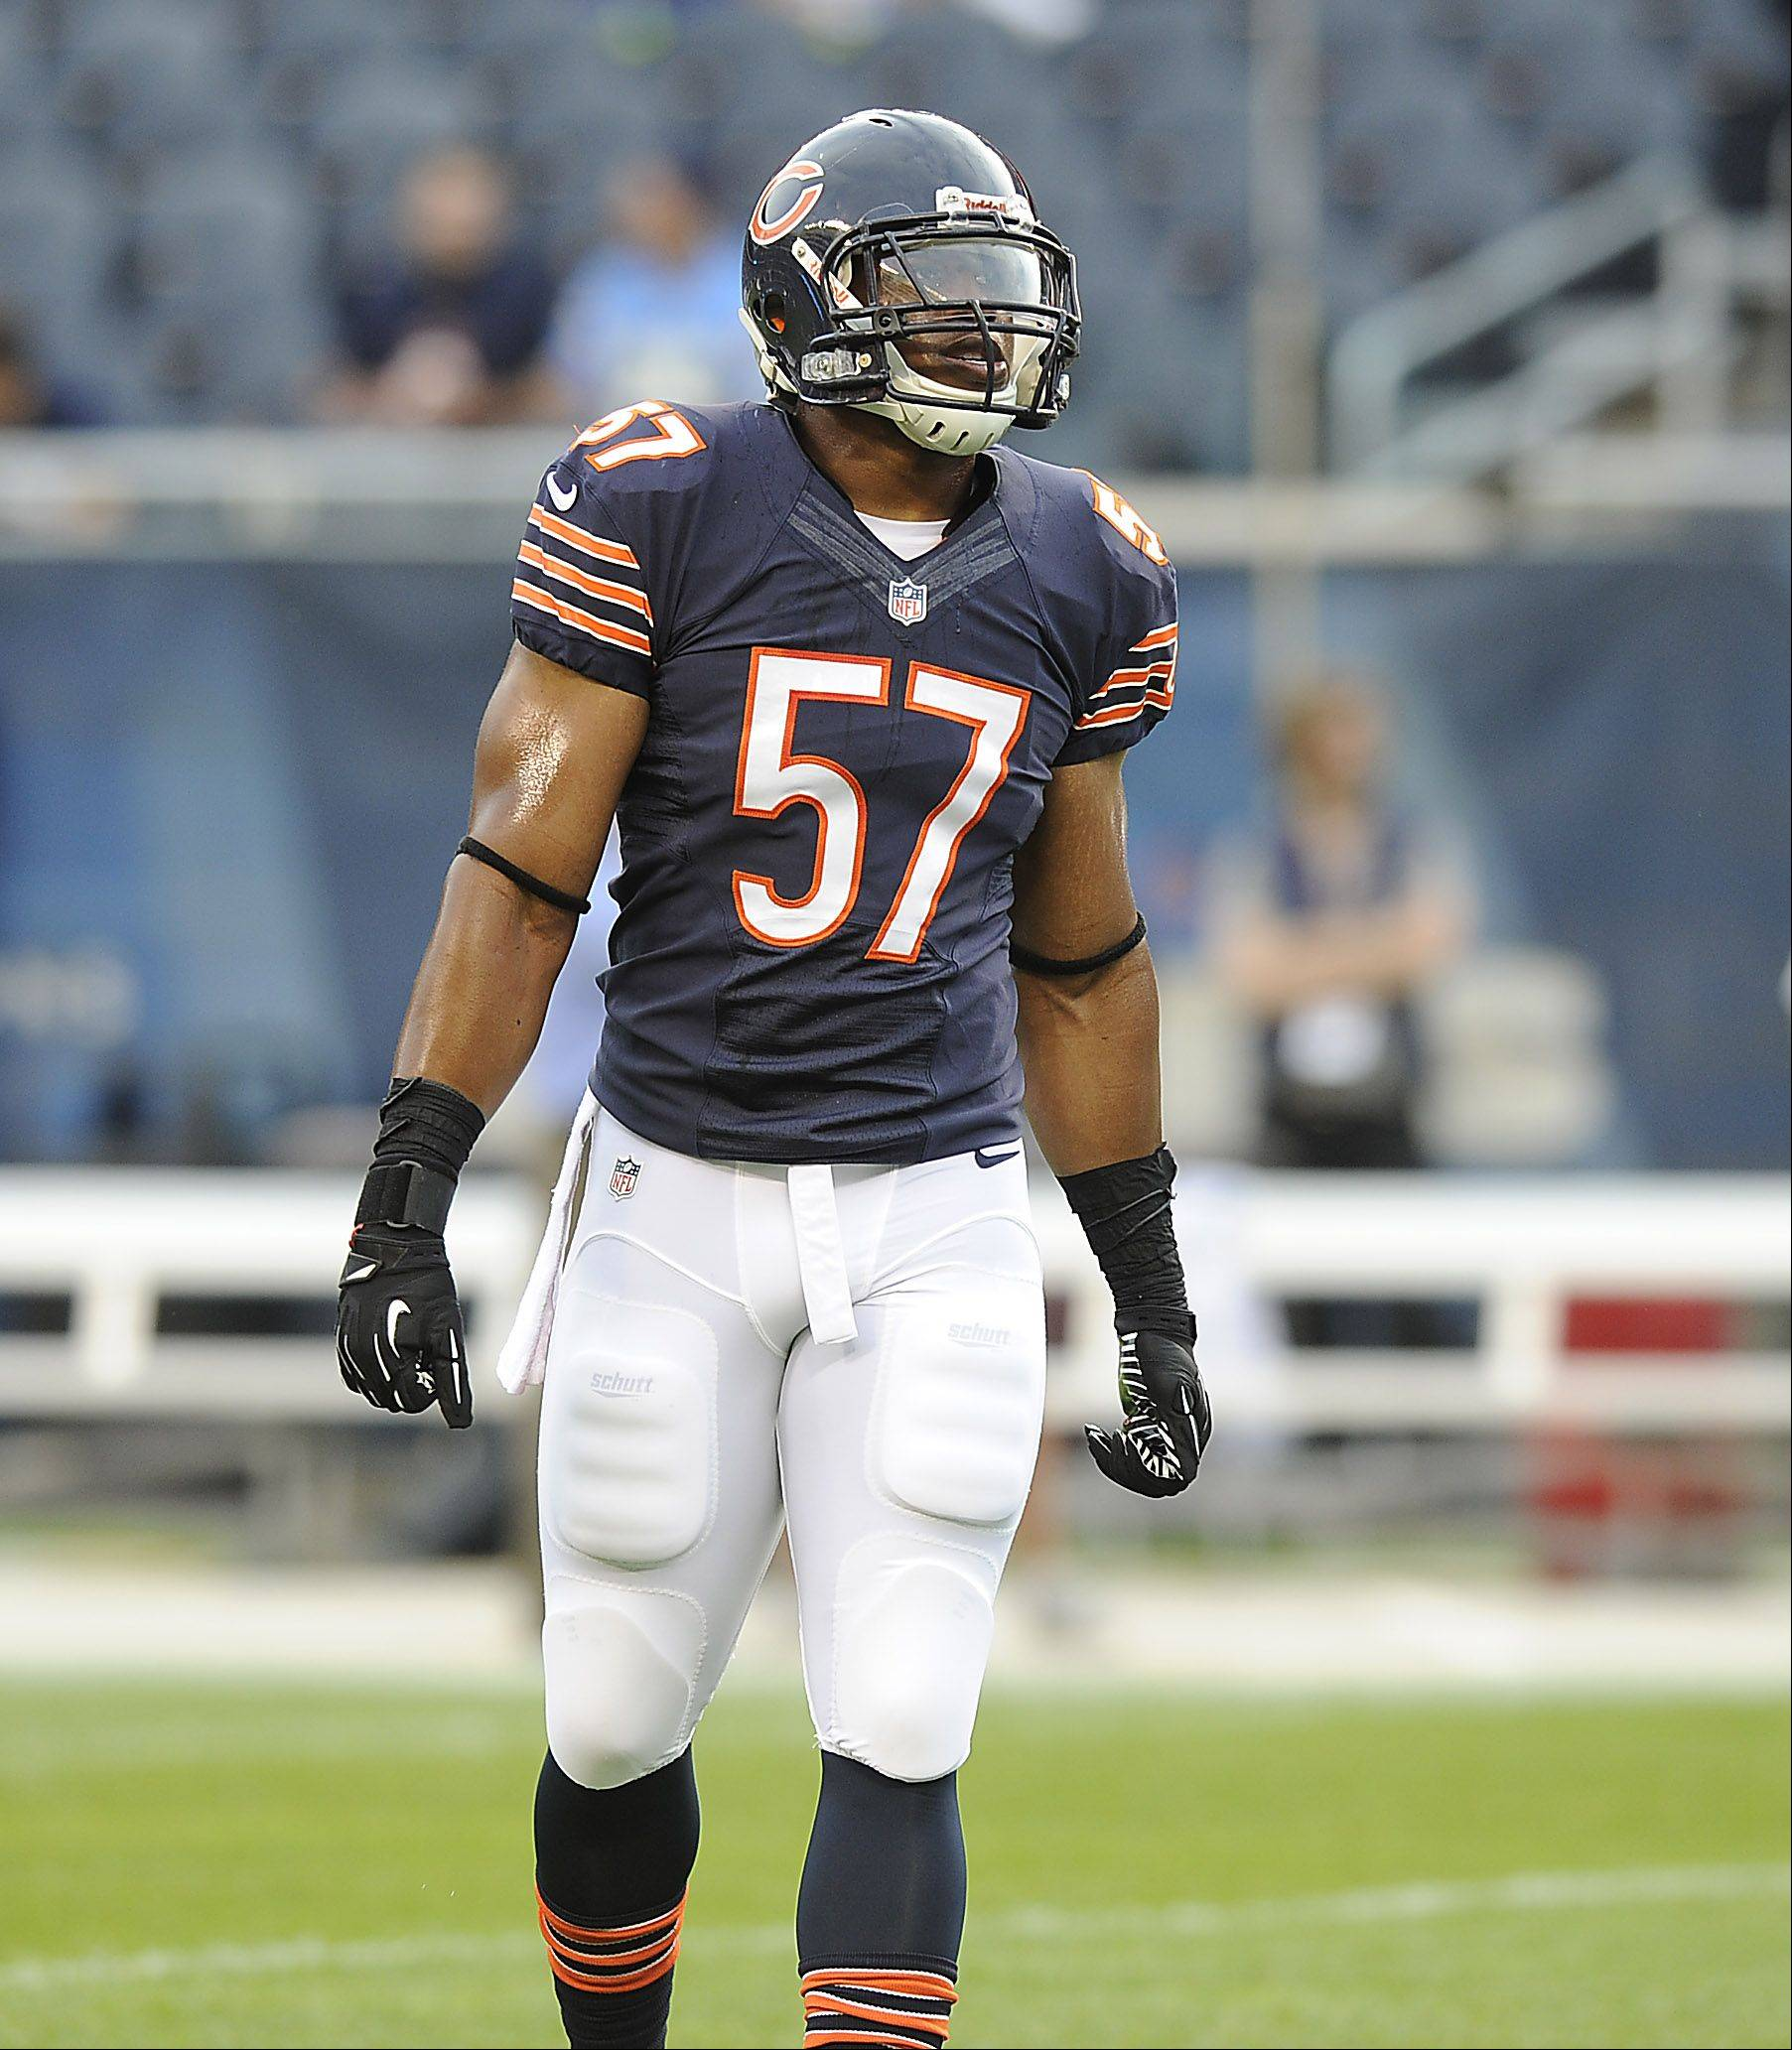 If the Bears don't start rookie Jonathan Bostic at middle linebacker on Sunday, he will see a lot of action on special teams.